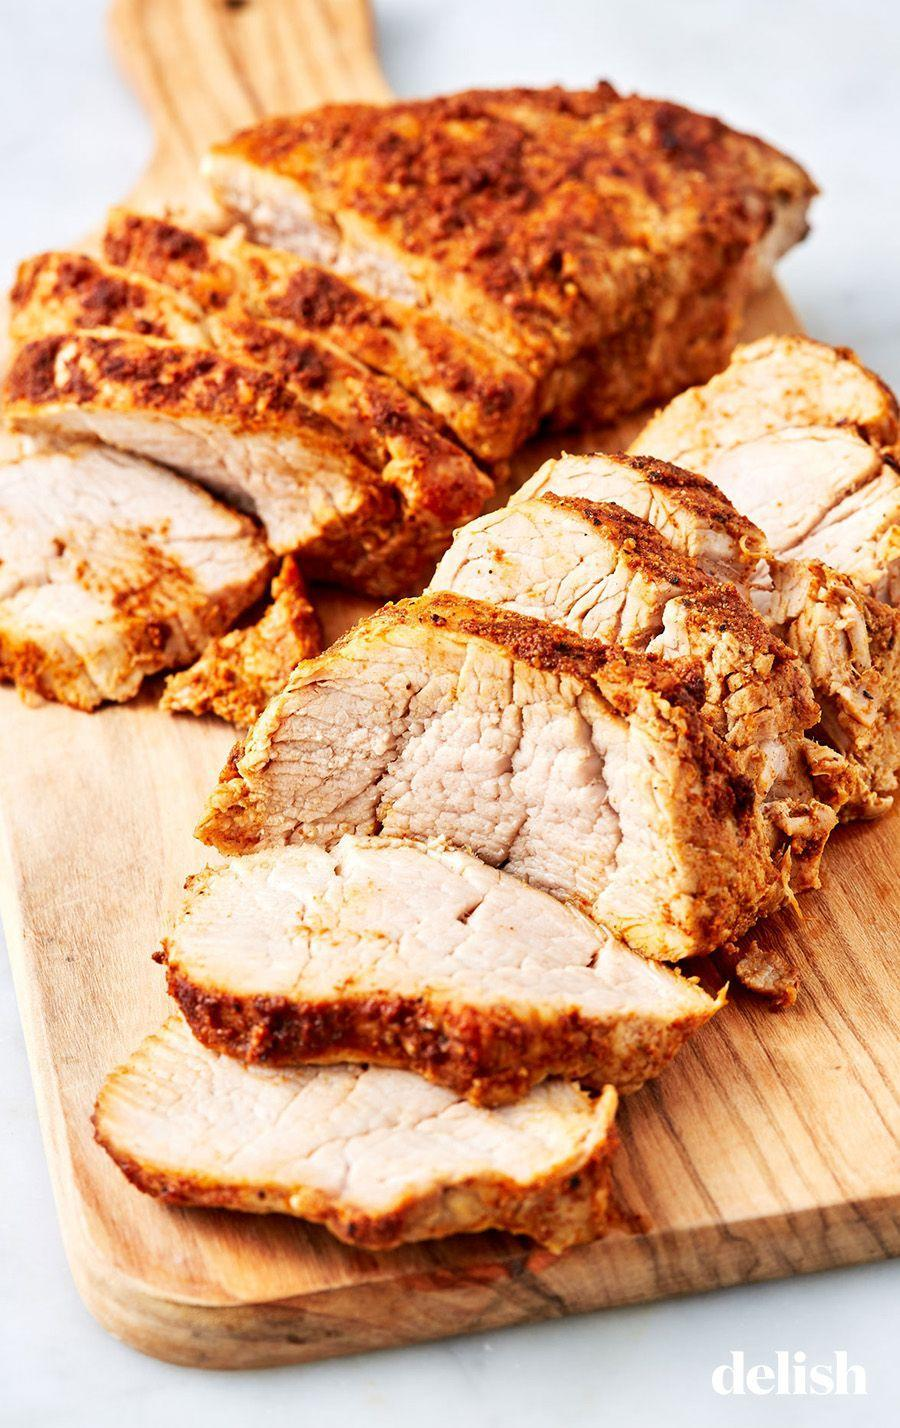 """<p>Last minute dinner guests? You can have a tender, juicy pork tenderloin in no time. </p><p>Get the recipe from <a href=""""https://www.delish.com/cooking/recipe-ideas/a27211563/instant-pot-pork-tenderloin-recipe/"""" rel=""""nofollow noopener"""" target=""""_blank"""" data-ylk=""""slk:Delish"""" class=""""link rapid-noclick-resp"""">Delish</a>.</p>"""